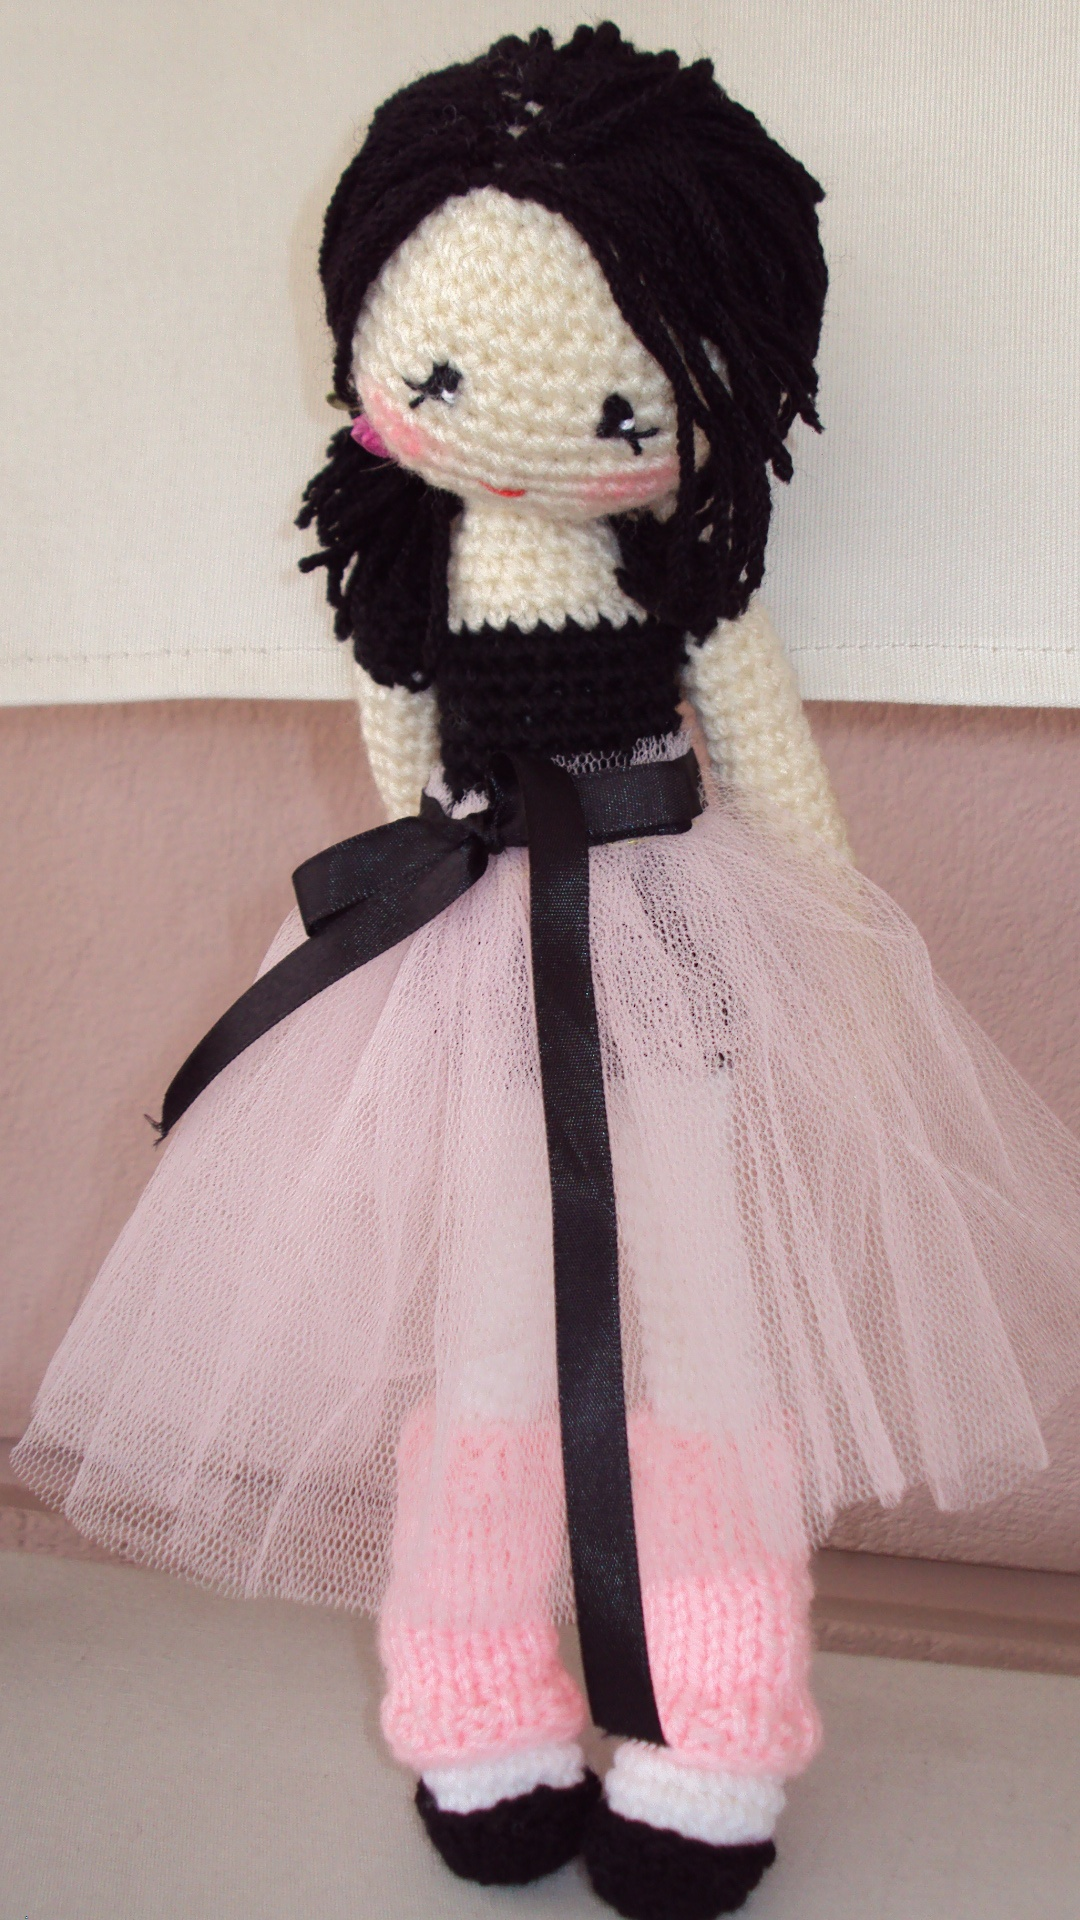 Amigurumi Lily Doll : Crochet Dolls; African American dolls with afro puffs and ...